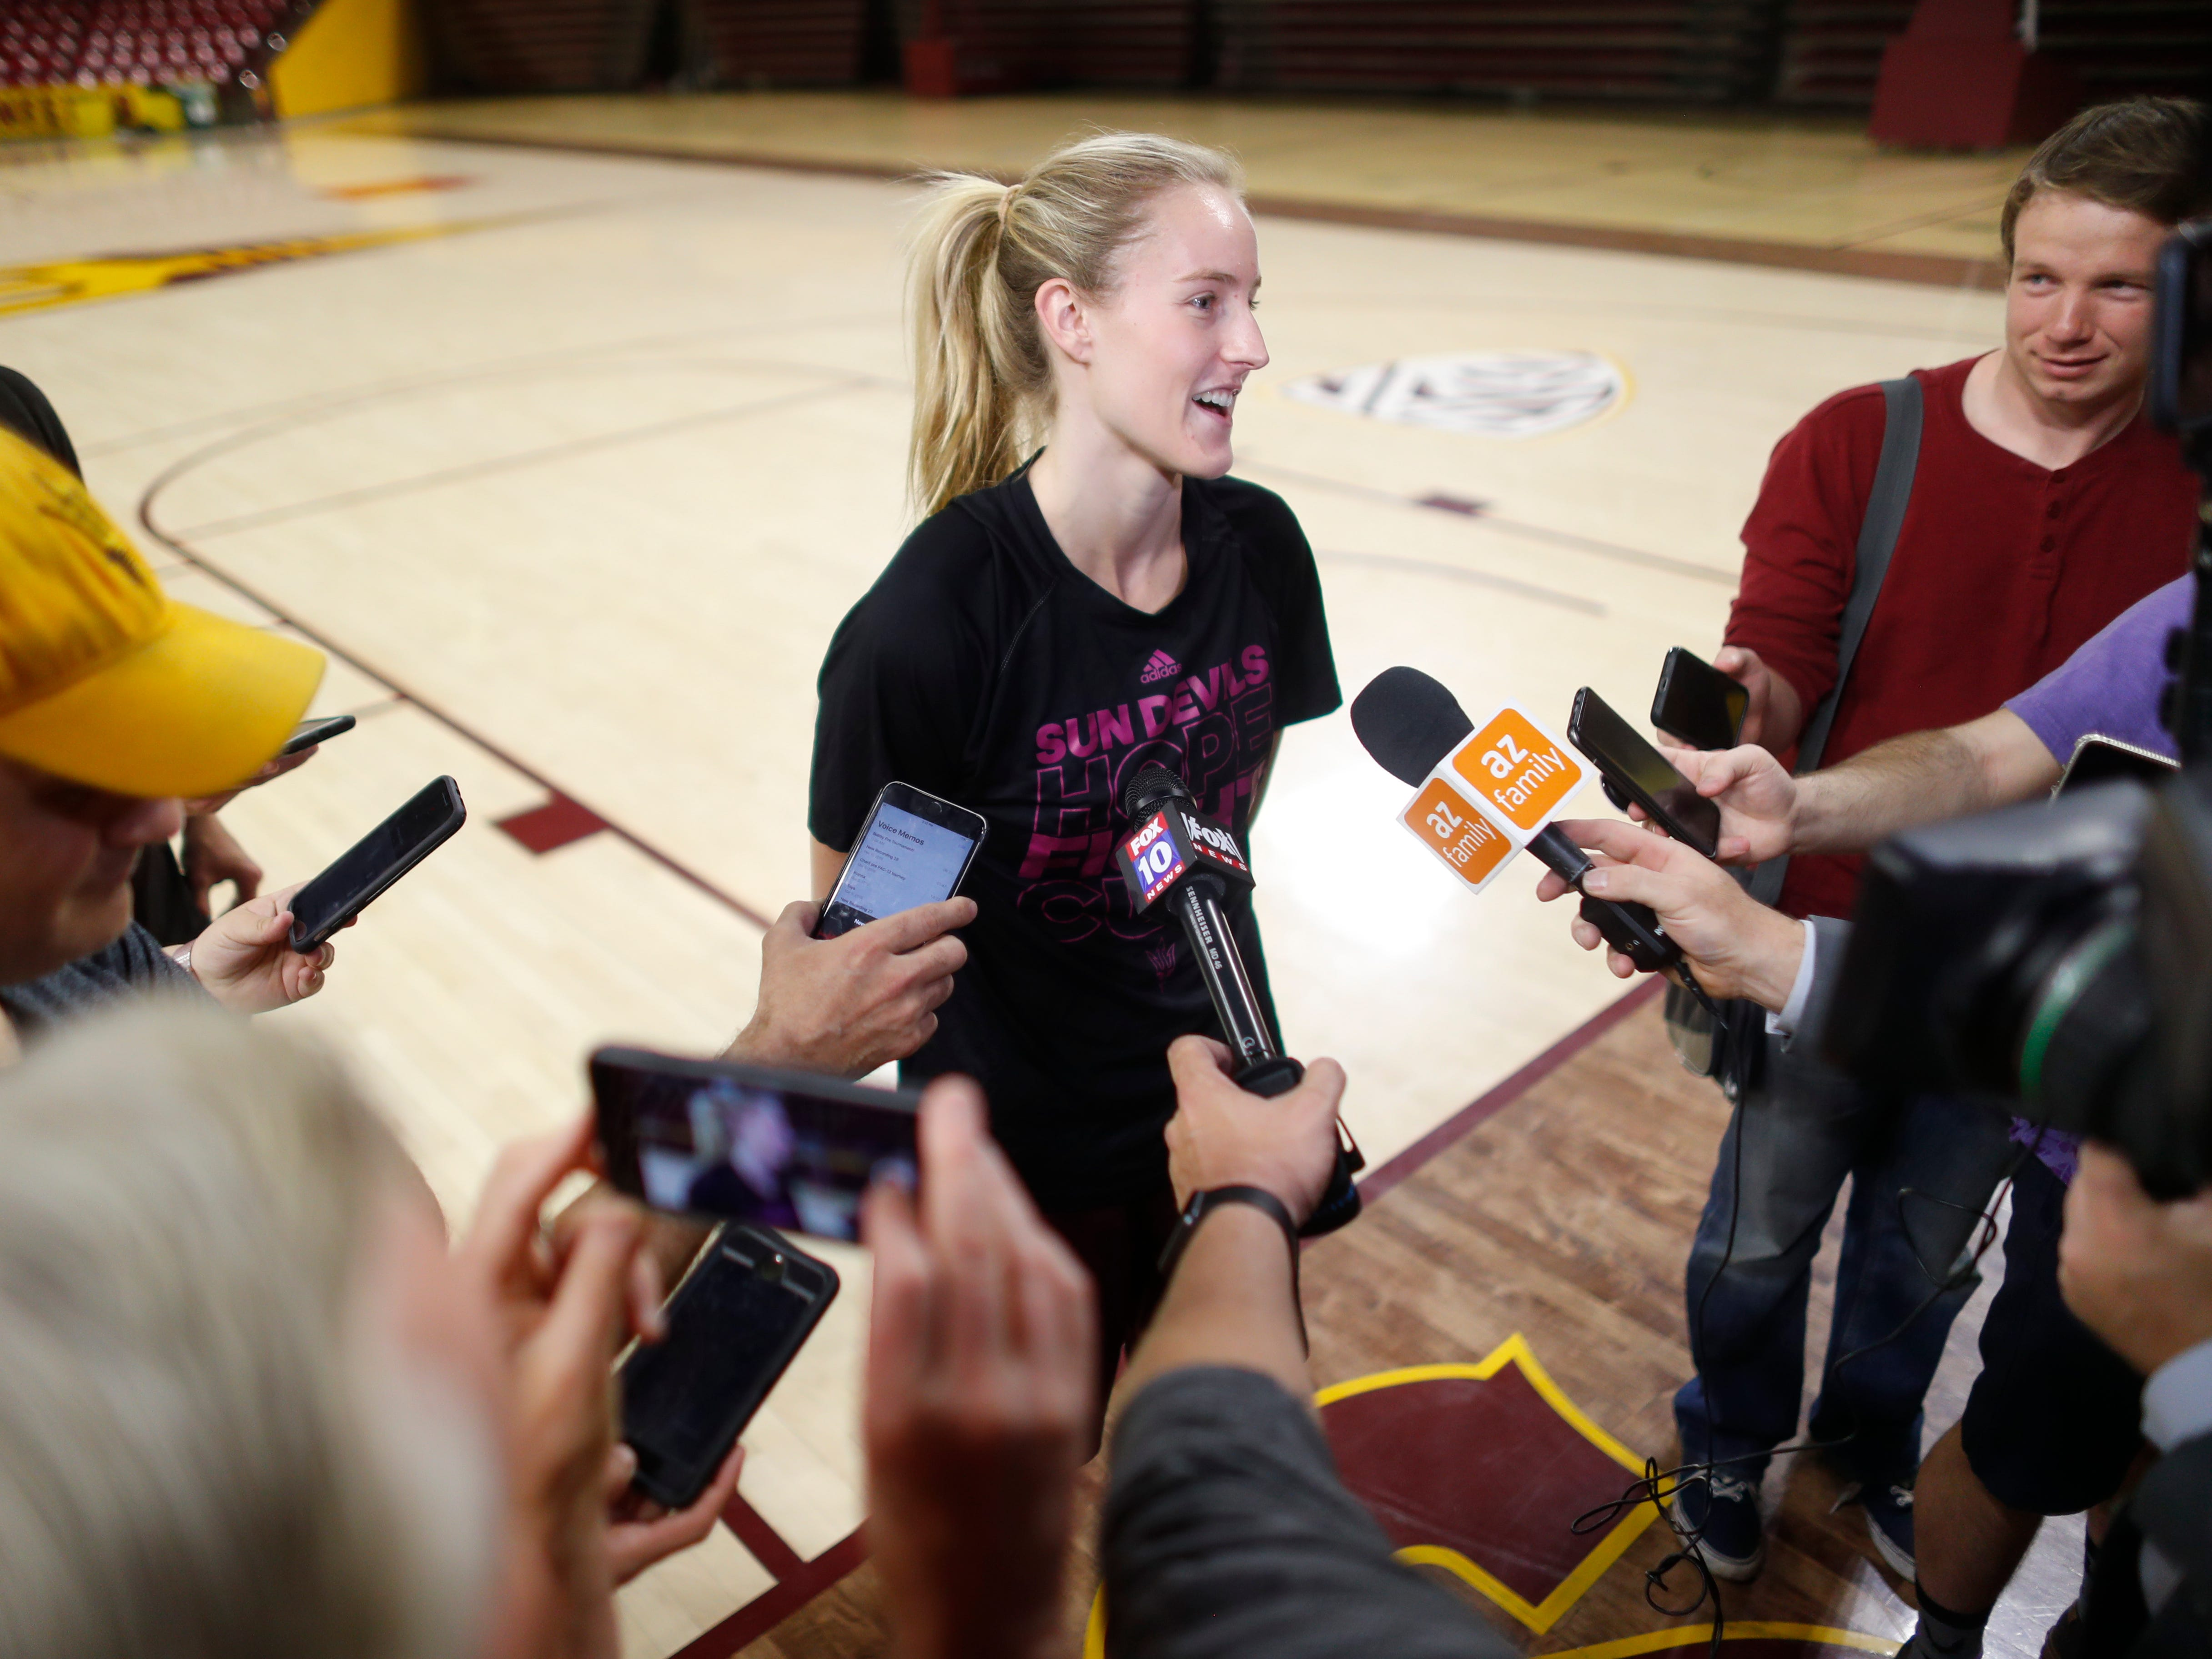 ASU's Courtney Ekmark talks with media after a practice at Wells Fargo Arena in Tempe, Ariz. on March 18, 2019. The team found out in a leaked bracket that they would be playing UCF in the first round of the NCAA tournament.